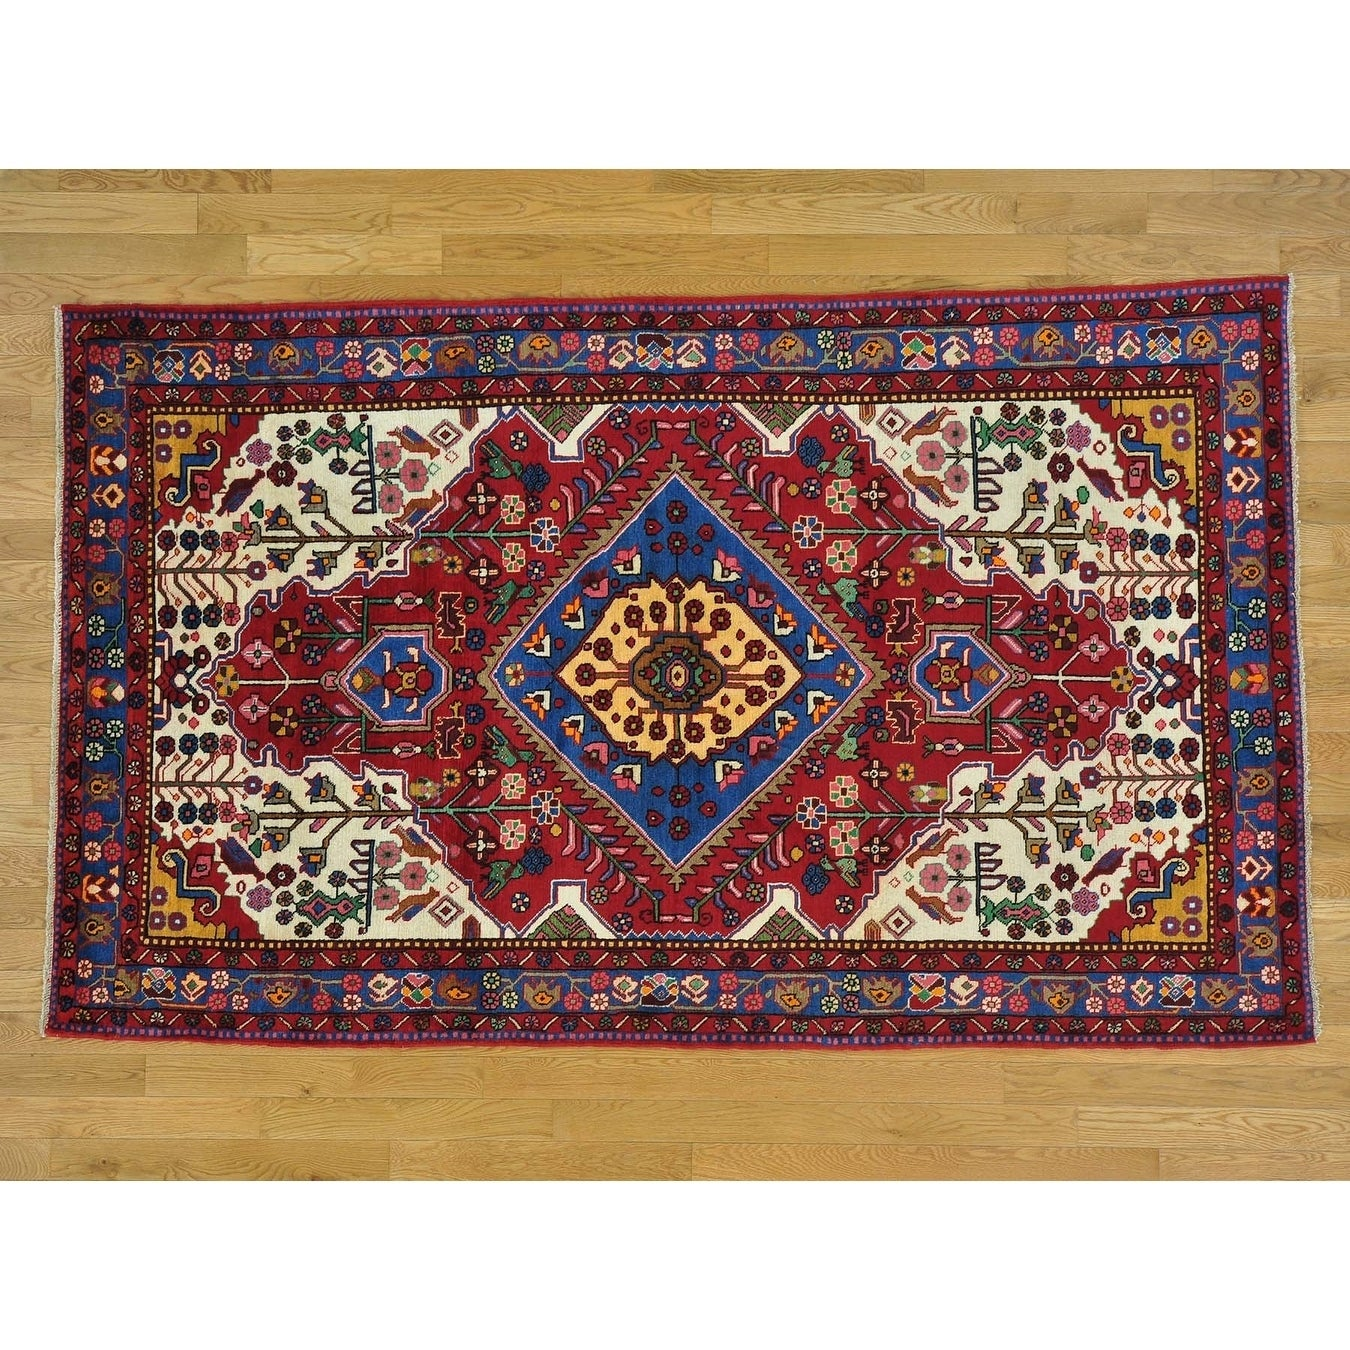 Hand Knotted Red Persian with Wool Oriental Rug - 5' x 8'1